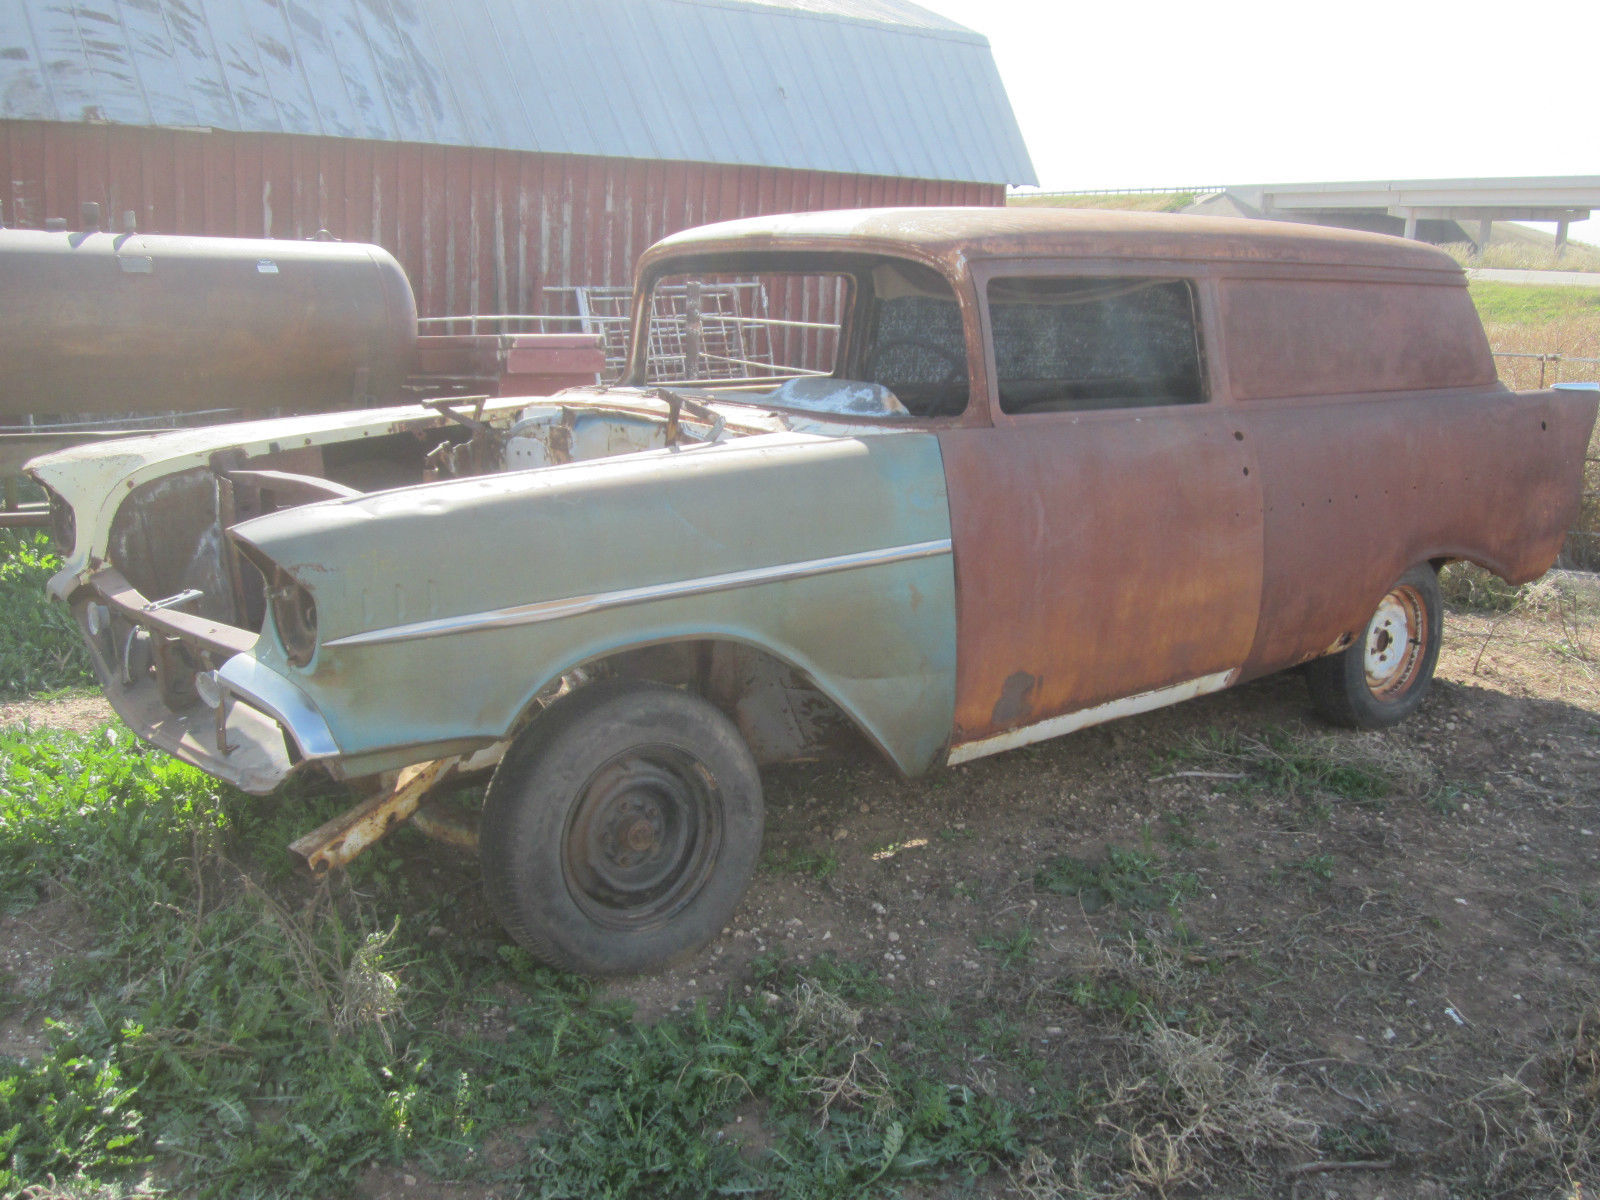 Texas Vehicle Bill Of Sale >> 1957 Chevrolet chevy Sedan delivery nomad wagon$$$$$$$$$$$$$$$$$$$$$$$$